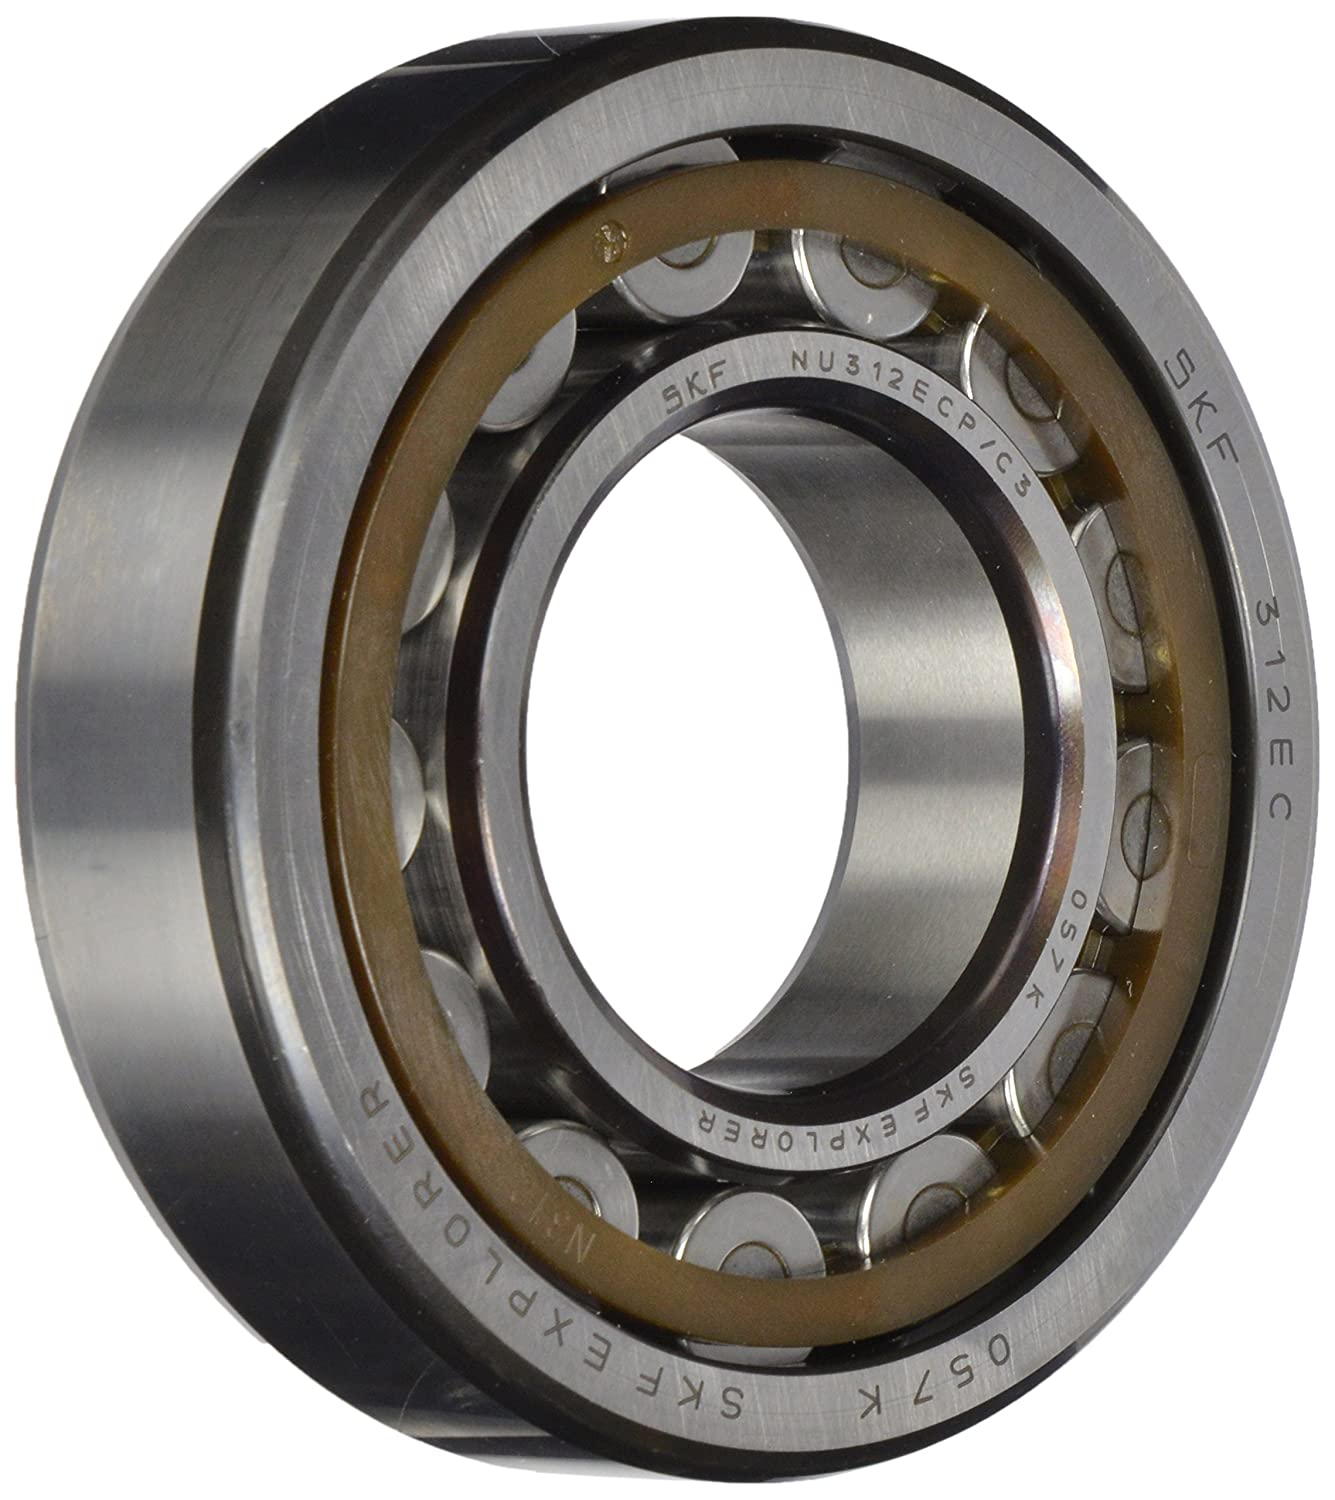 C3 Clearance High Capacity Single Row 80mm Bore SKF NU 216 ECP//C3 Cylindrical Roller Bearing 140mm OD Straight Bore Removable Inner Ring Polyamide//Nylon Cage 26mm Width Metric